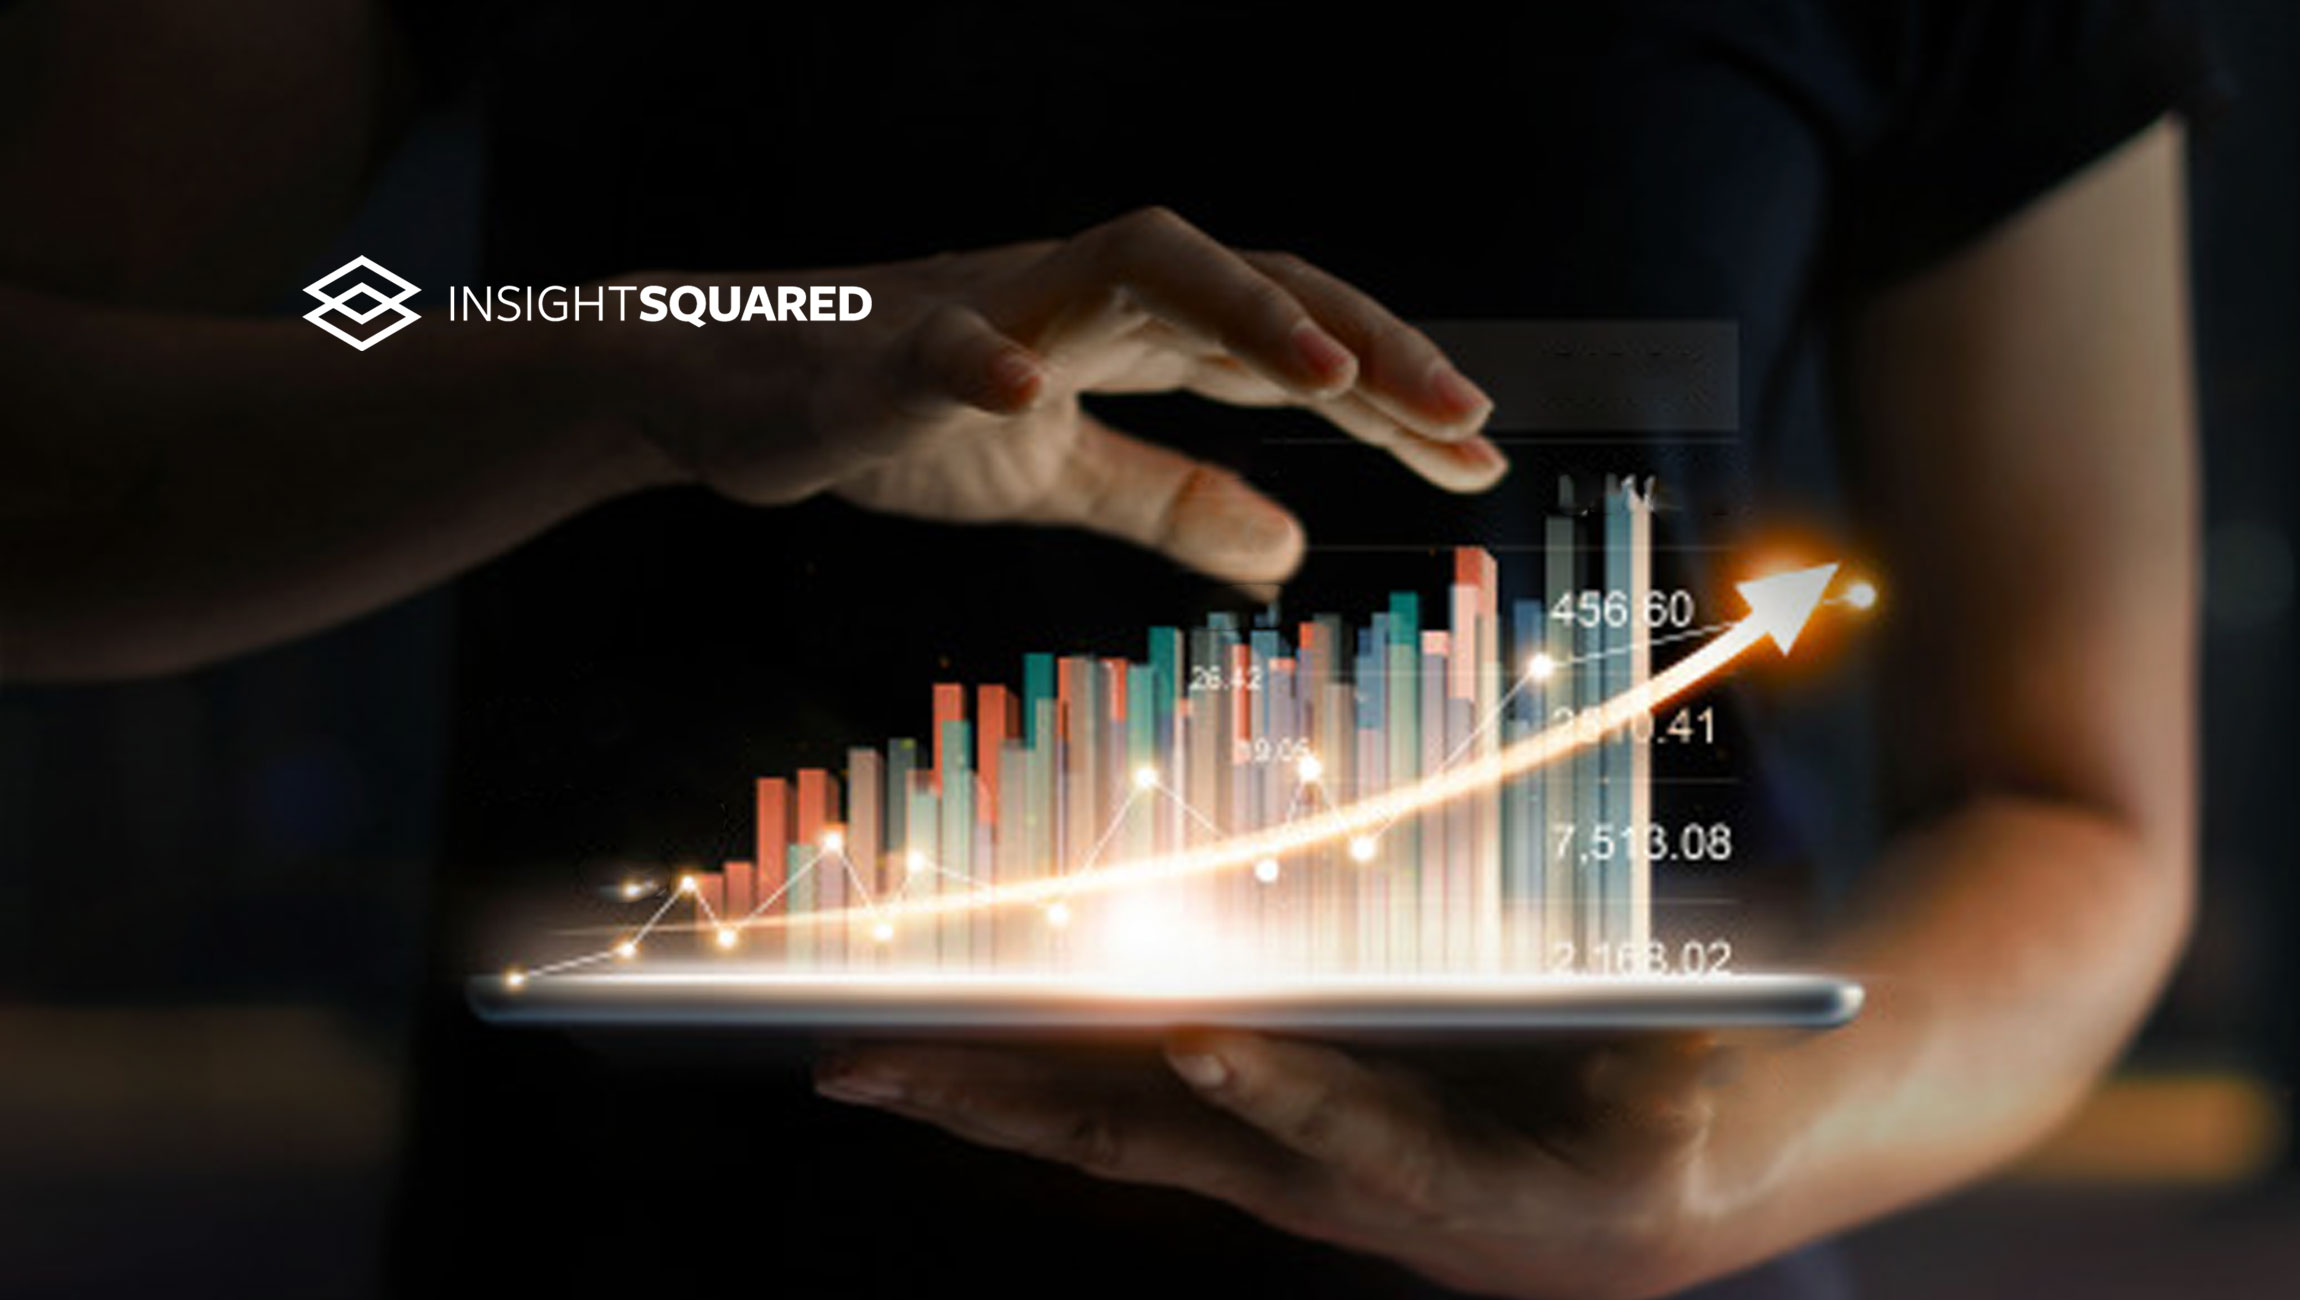 InsightSquared Unveils Industry's Most Complete and Flexible Revenue Intelligence Platform, Now With Conversational Intelligence